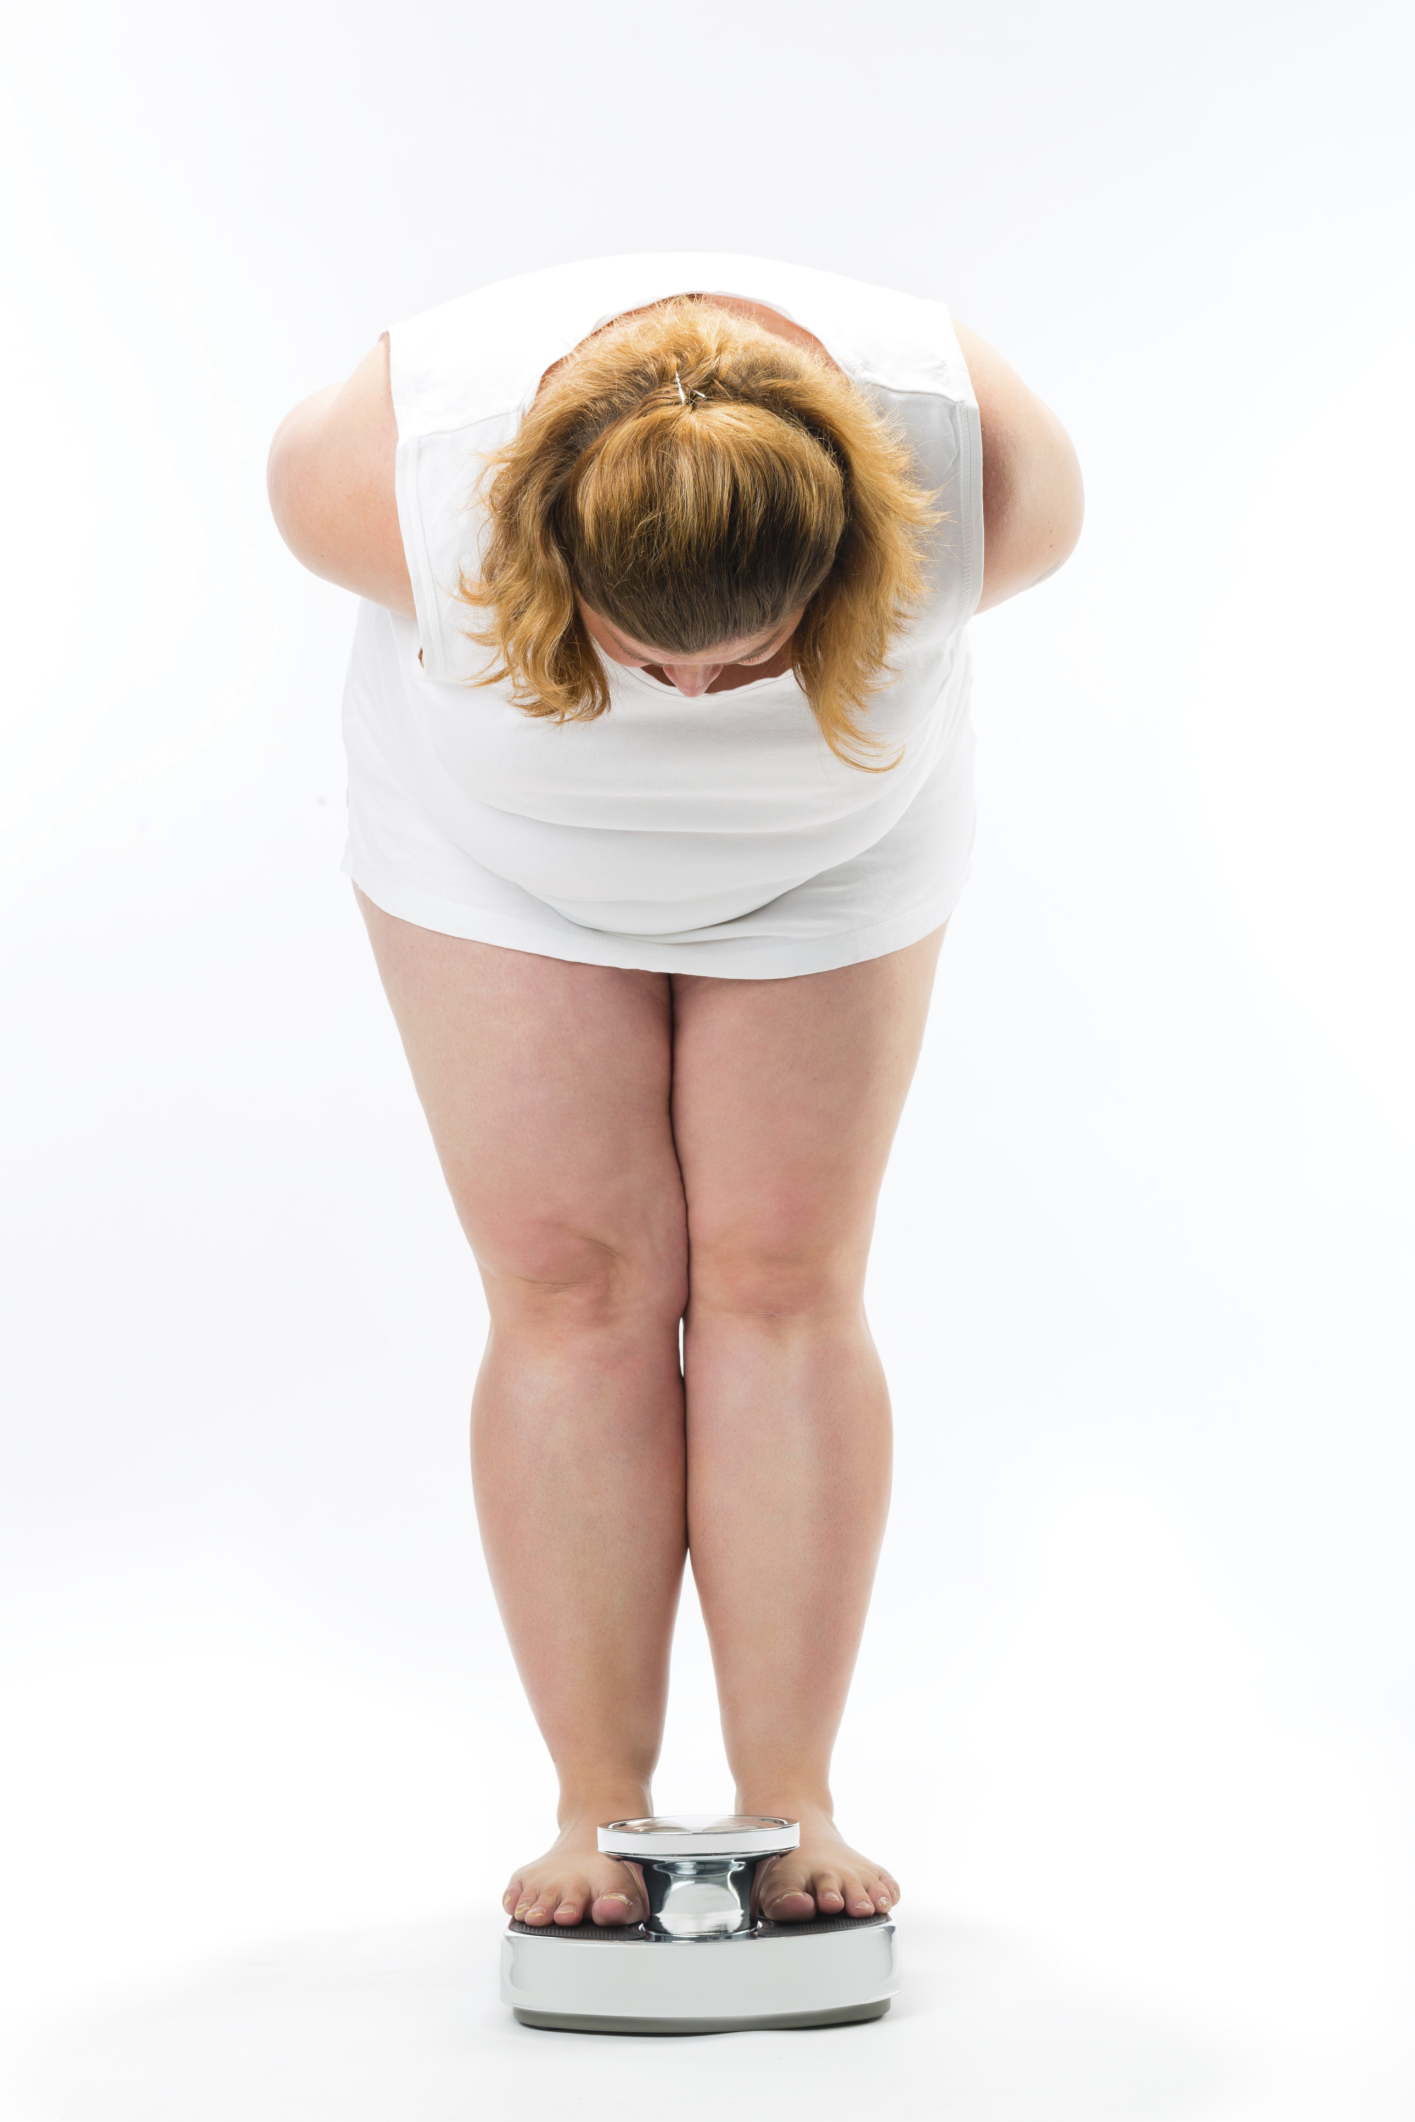 Low Body Temperature Linked To Obesity In New Study Wilson S